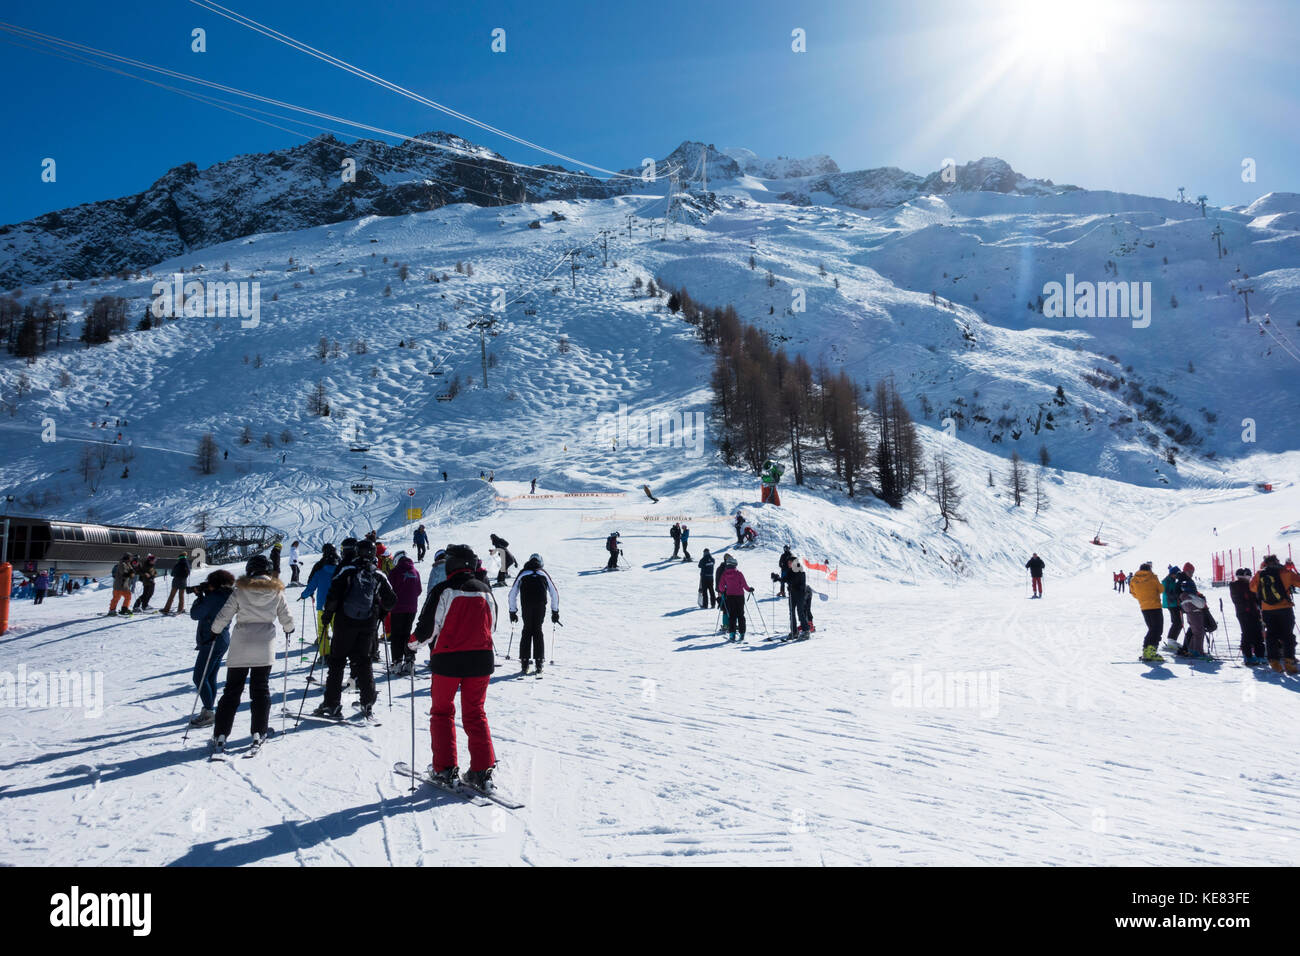 Skiers At A Ski Resort, Aiguille Ges Grands Montets; Chamonix, France - Stock Image